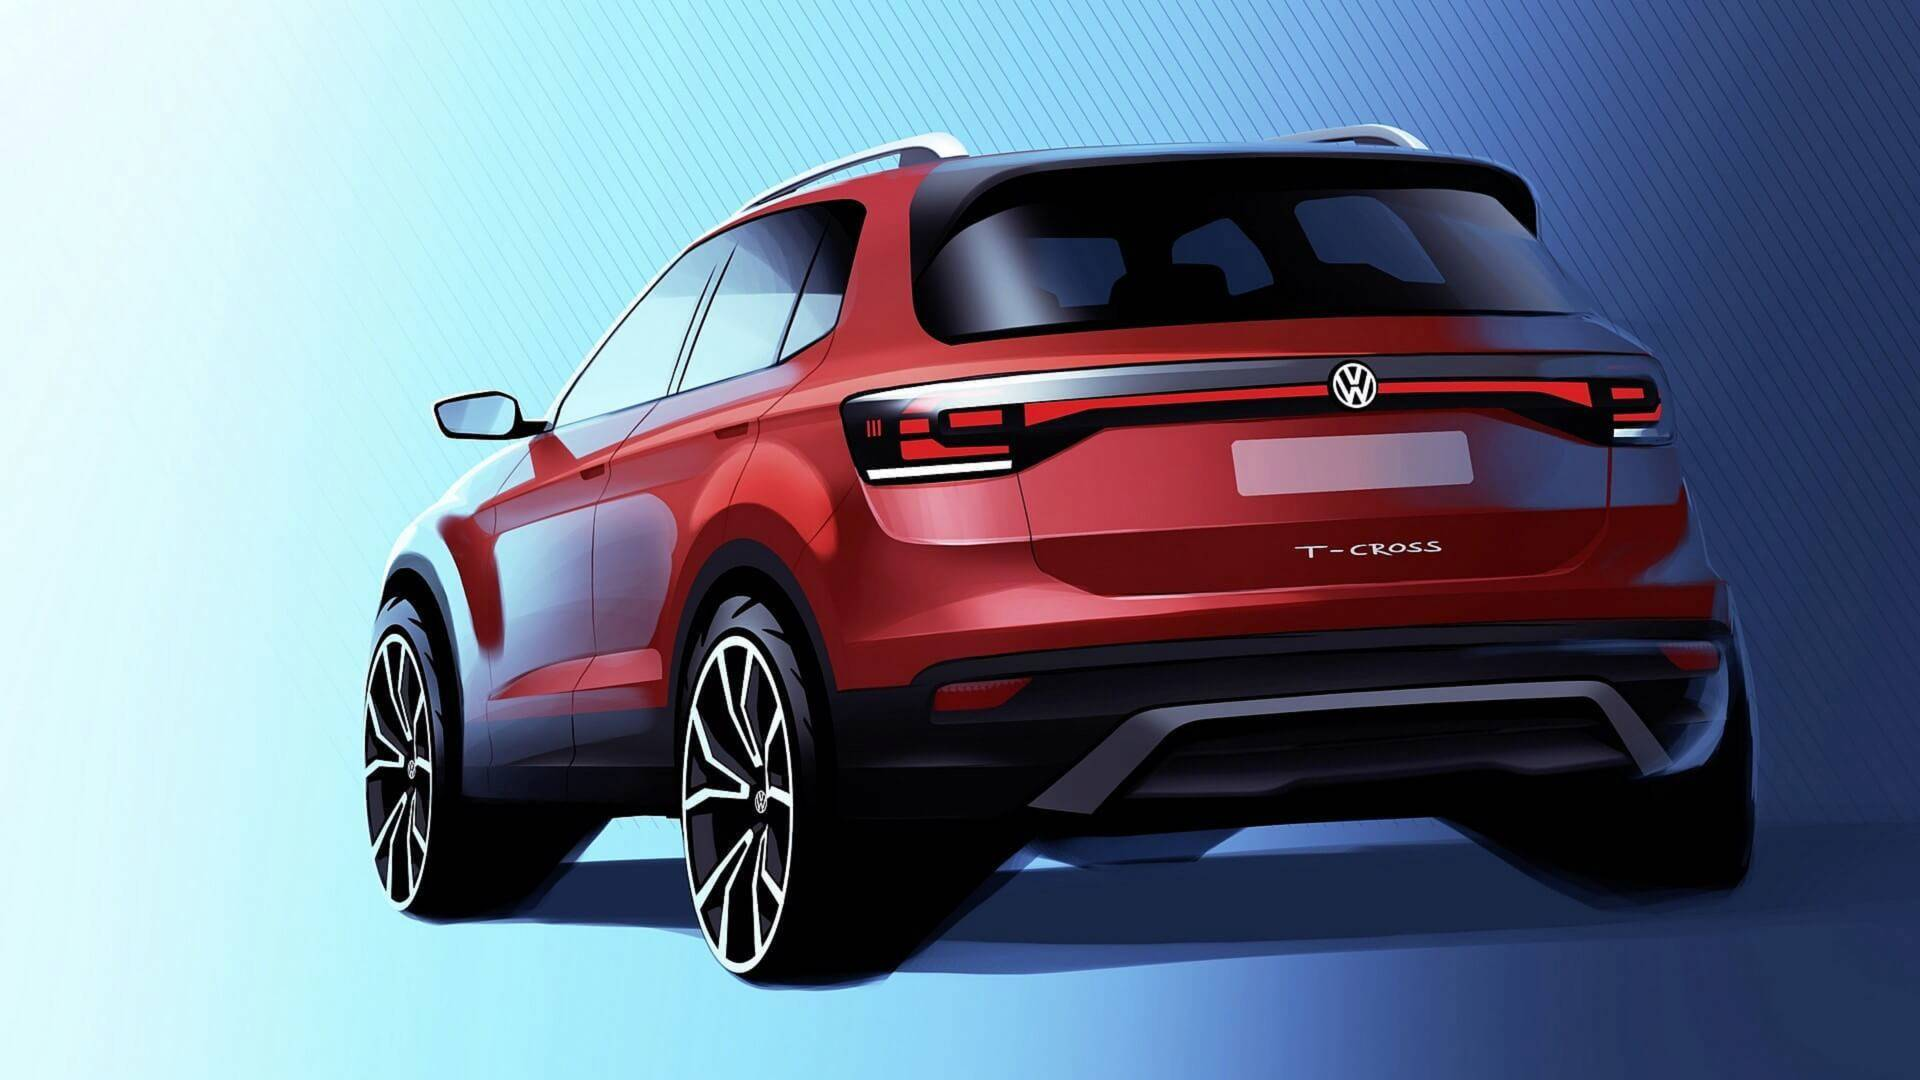 2019-vw-t-cross-teaser.jpg